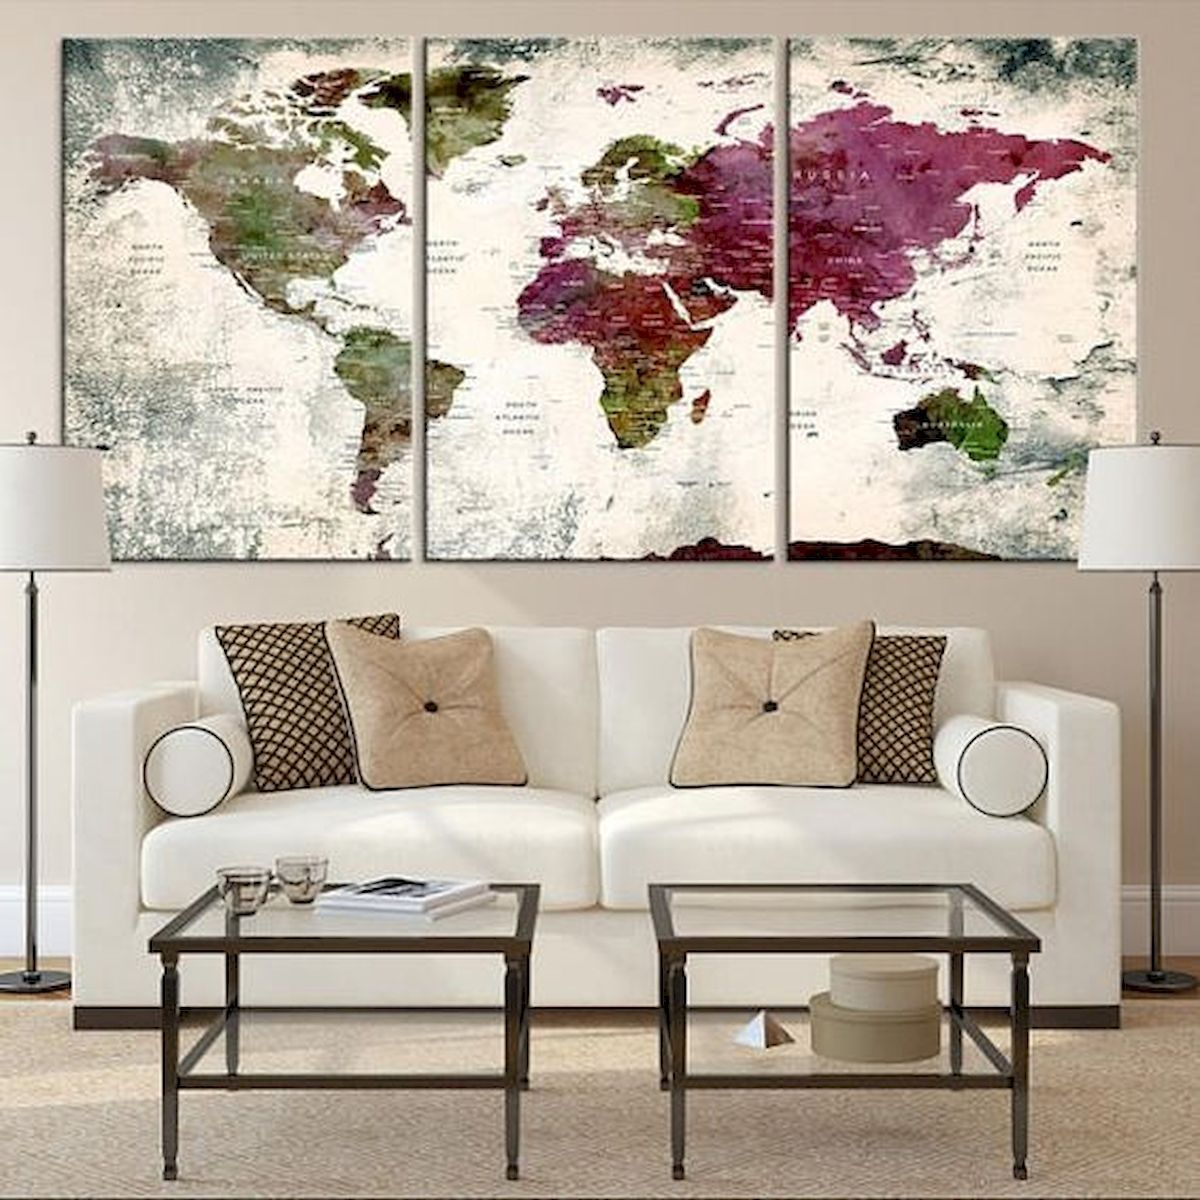 60 Most Elegant Wall Art Ideas For Living Room Makeover Elegant Ideas Living Livingroom Makeover Wa In 2020 Elegant Wall Art World Map Wall Art World Map Canvas